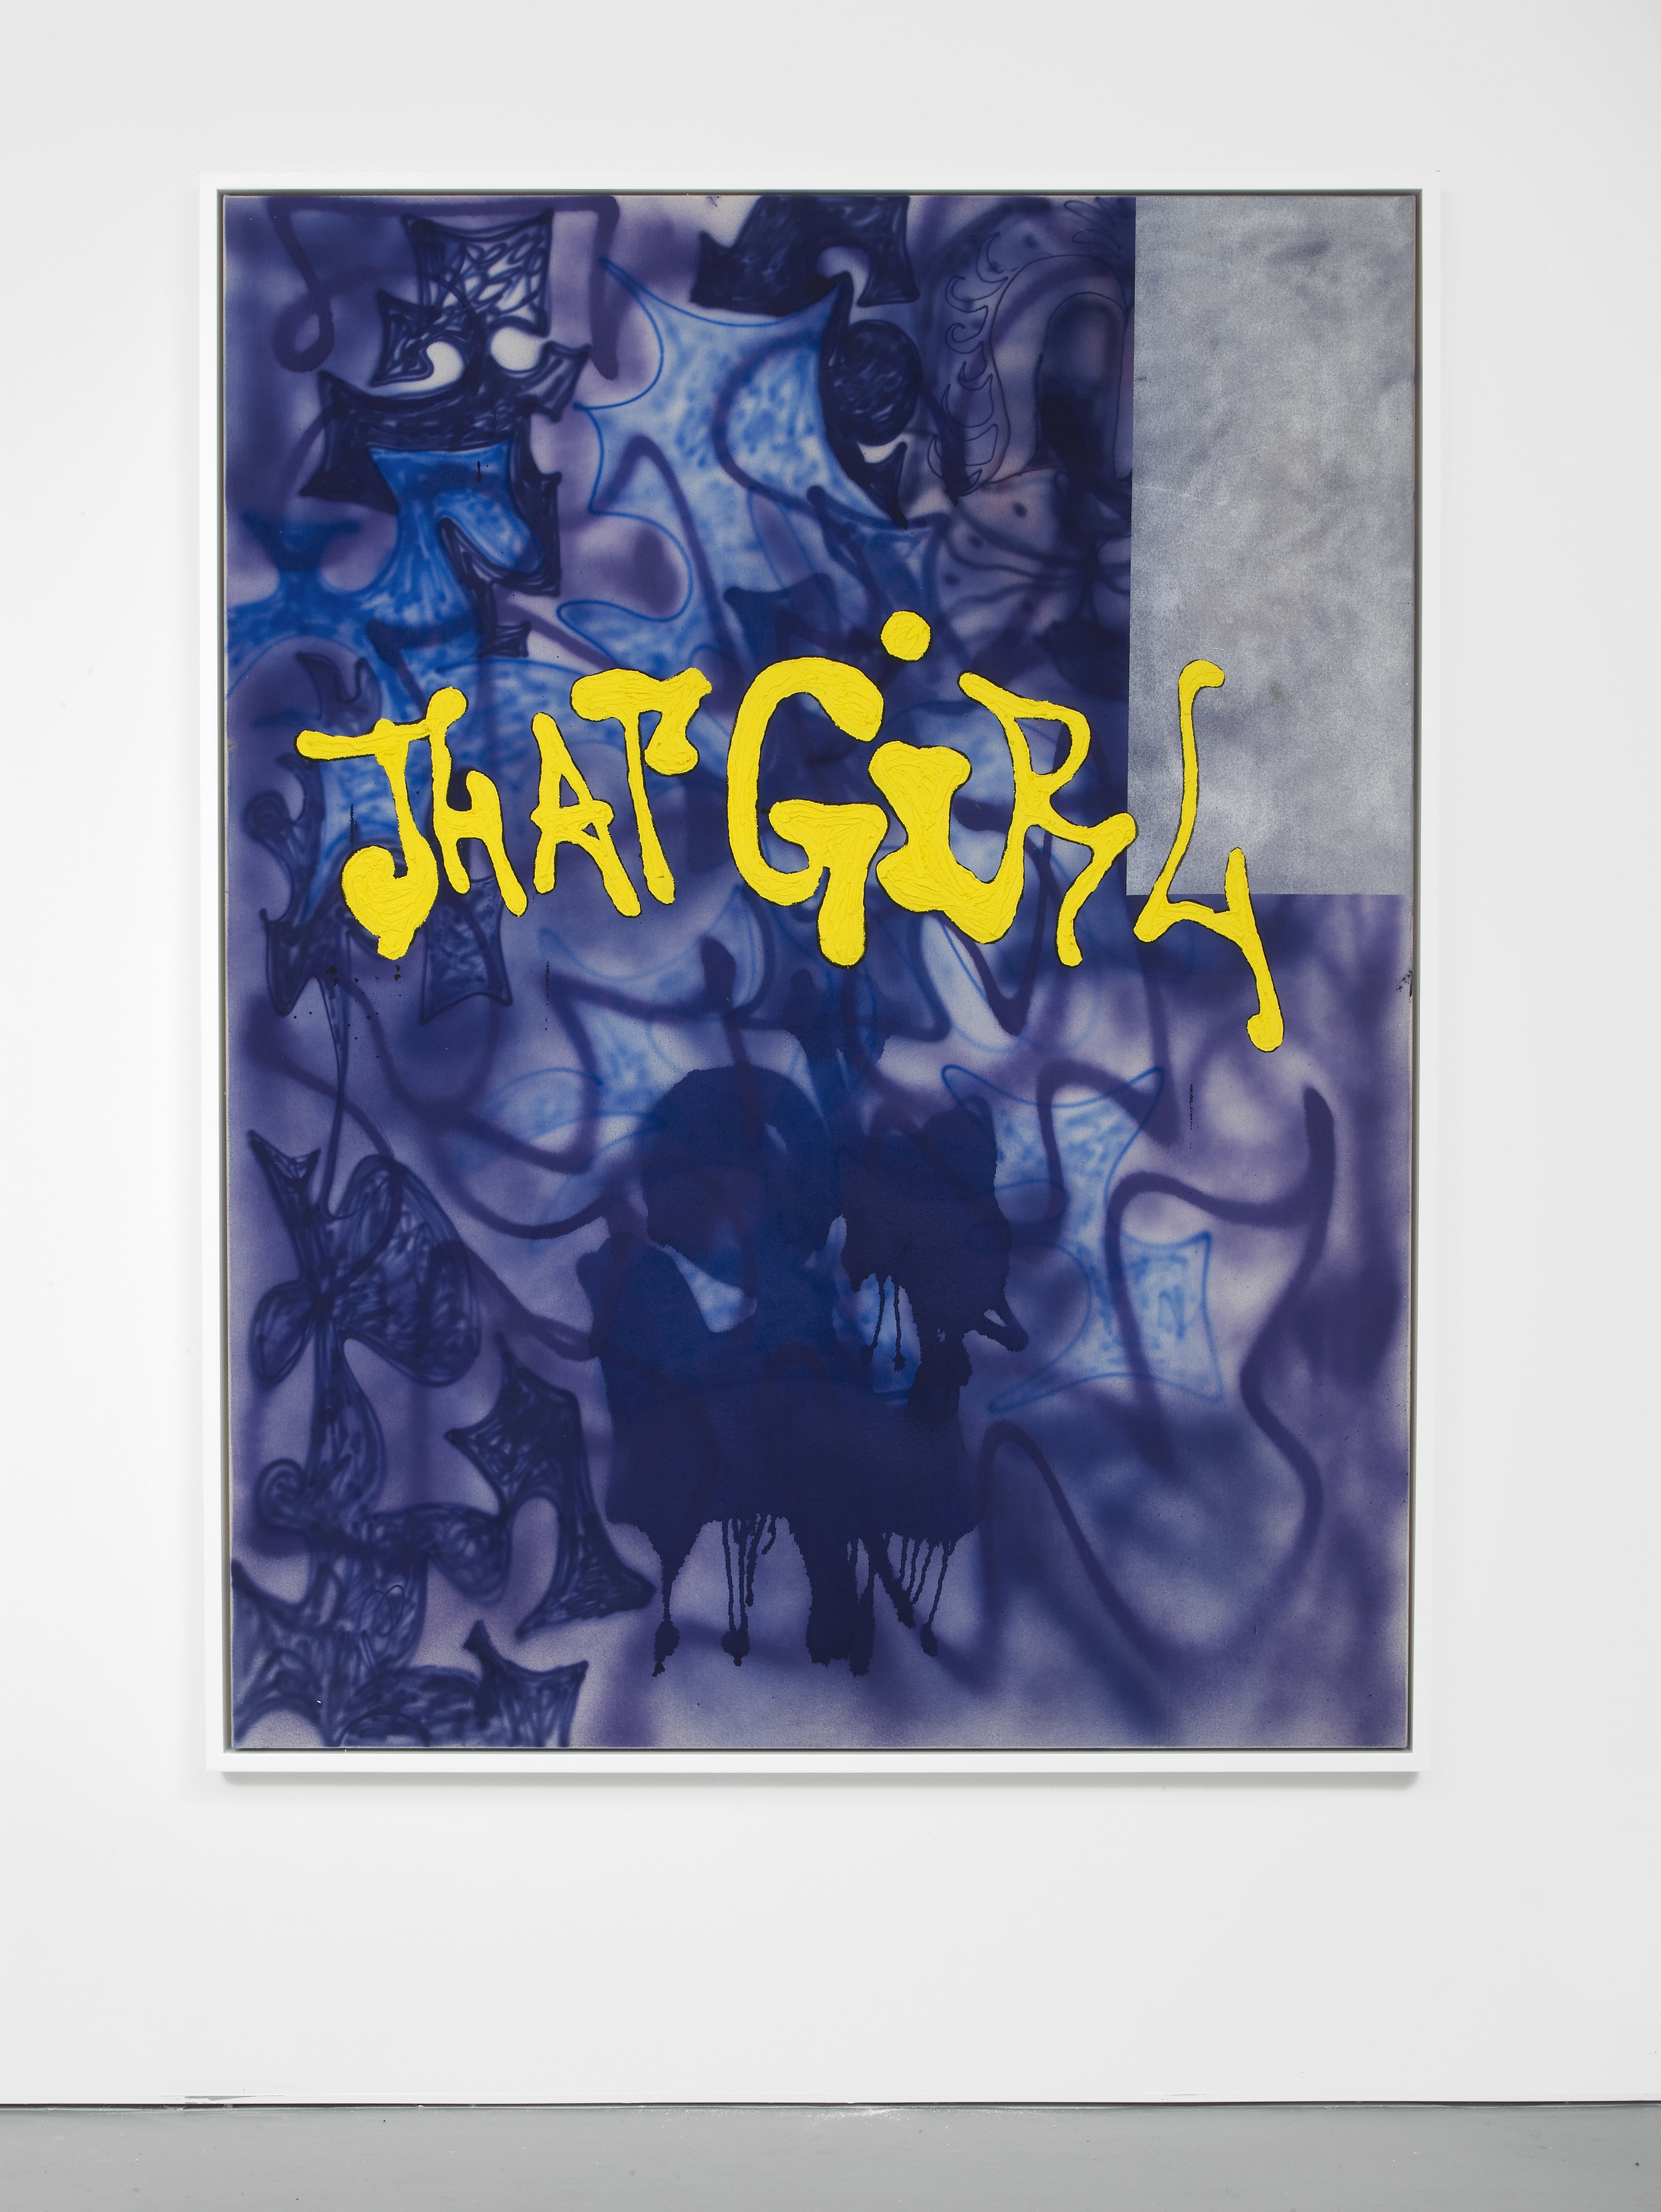 That Girl 2014 Spray paint, acrylics and Plastisol (PVC-paint) on glue primed linen canvas 170 x 130 cm / 66.9 x 51.1 in